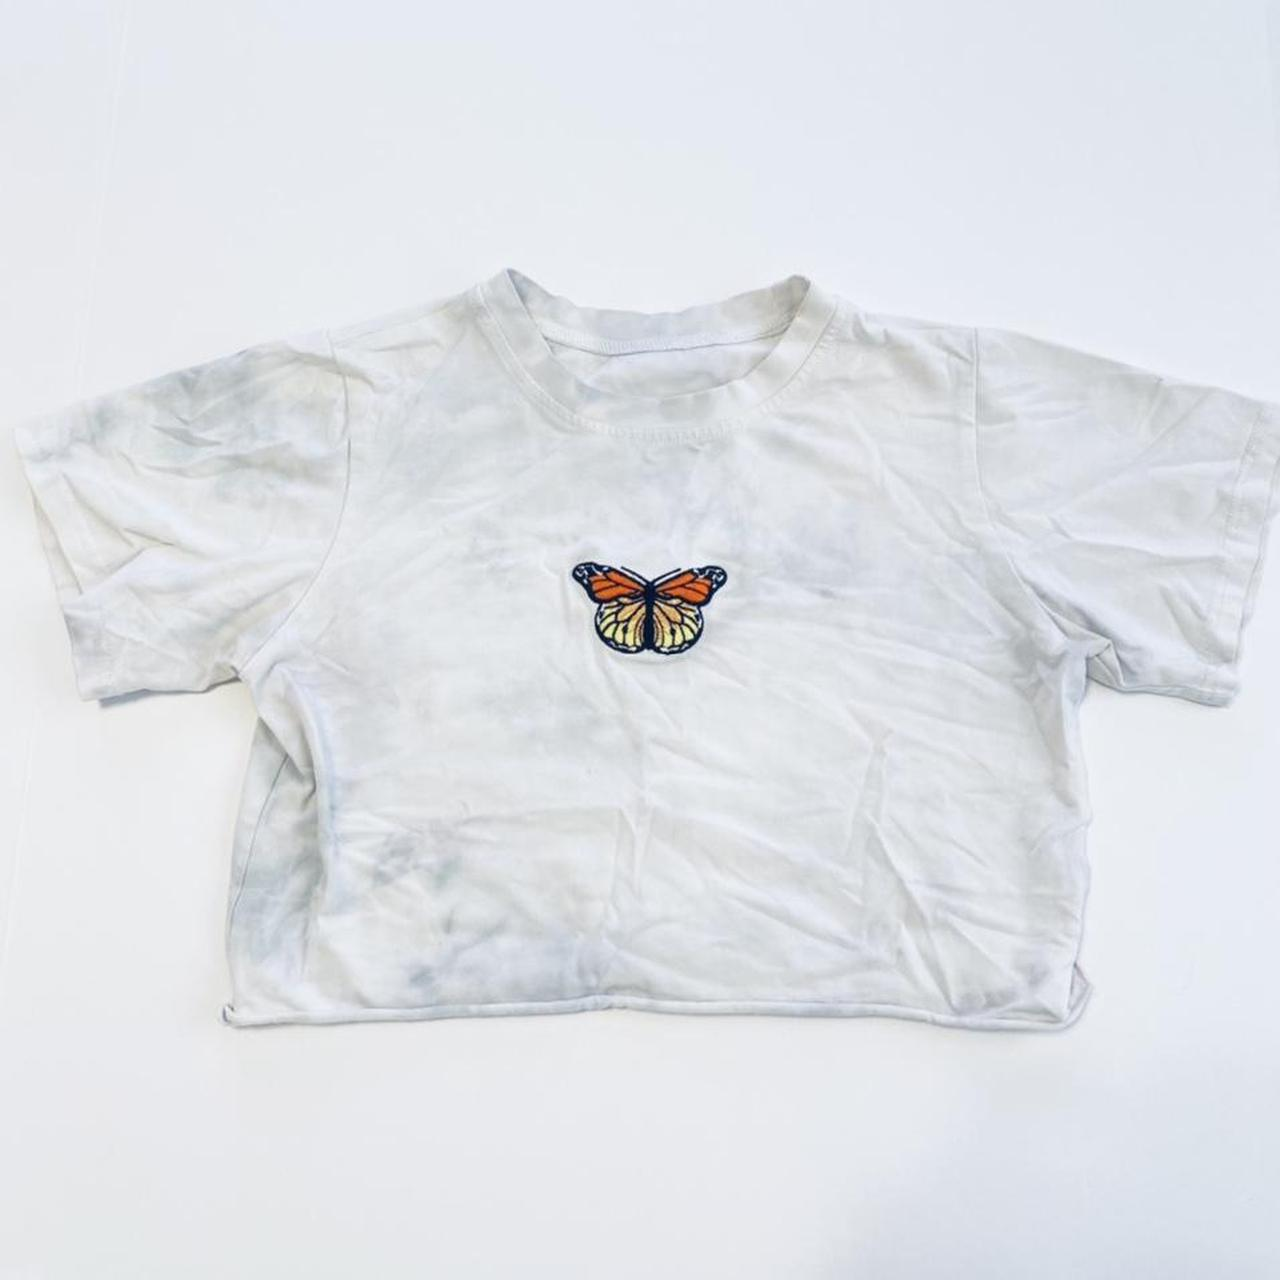 Product Image 1 - Brandy butterfly tee One size  Blue